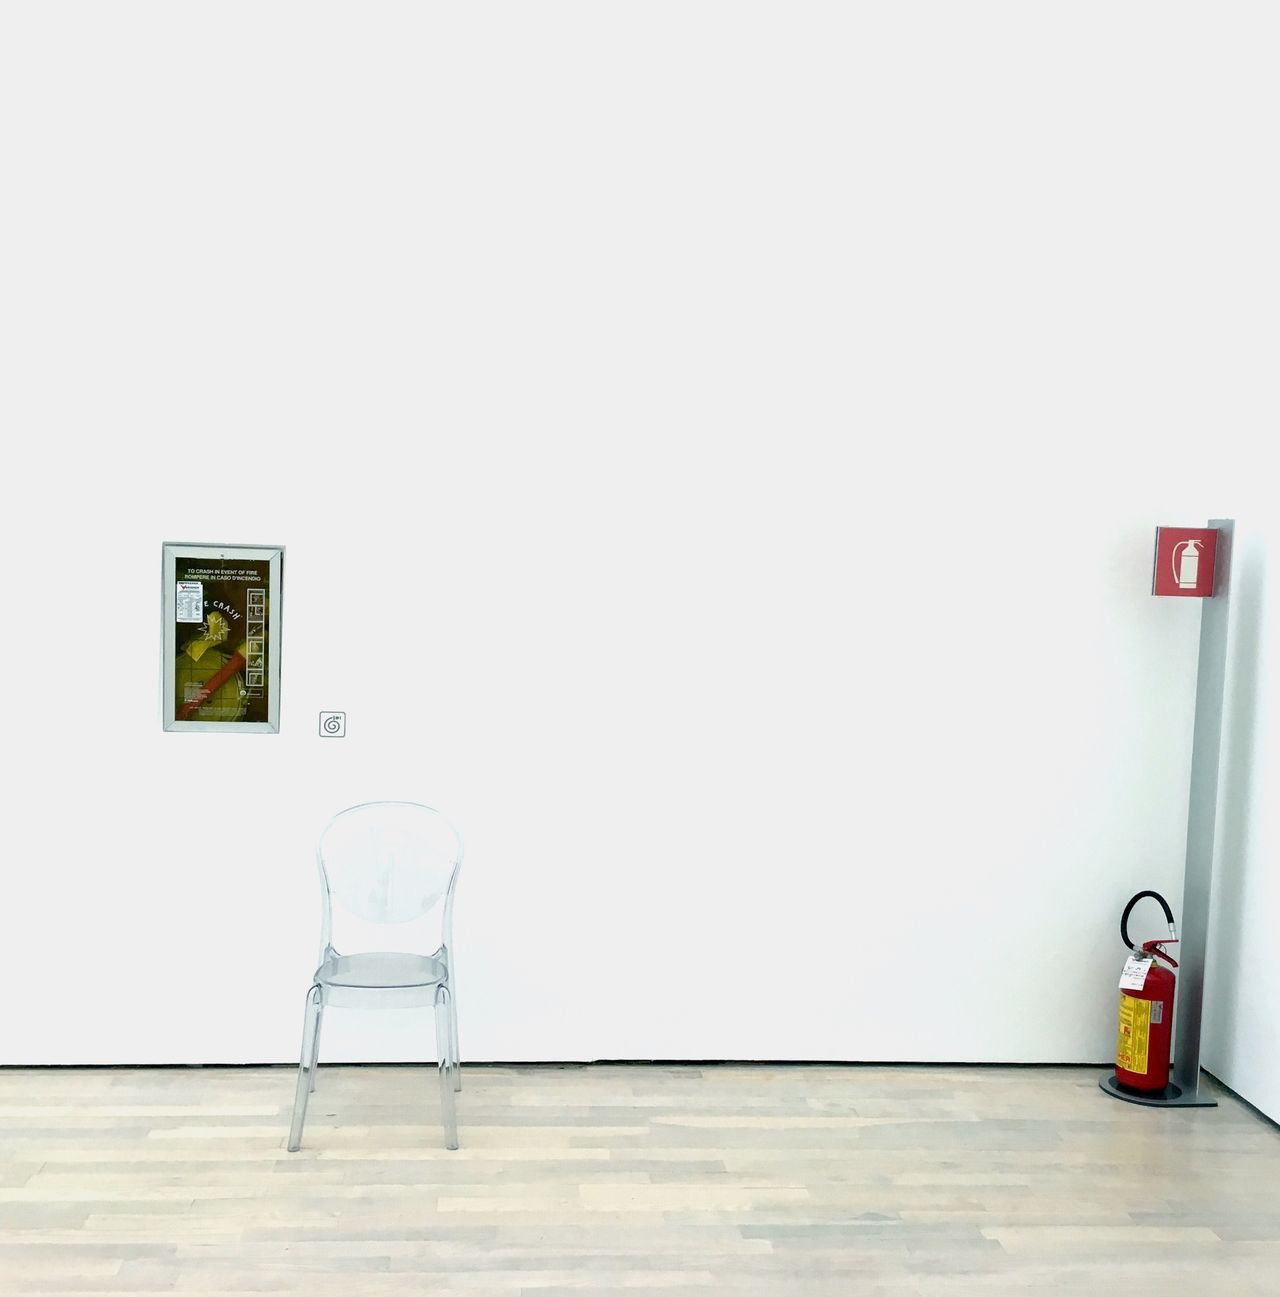 Fading Art Absence Art Contemporary Art Contemporaryart Empty Emtyness Kartel Missing Museum White